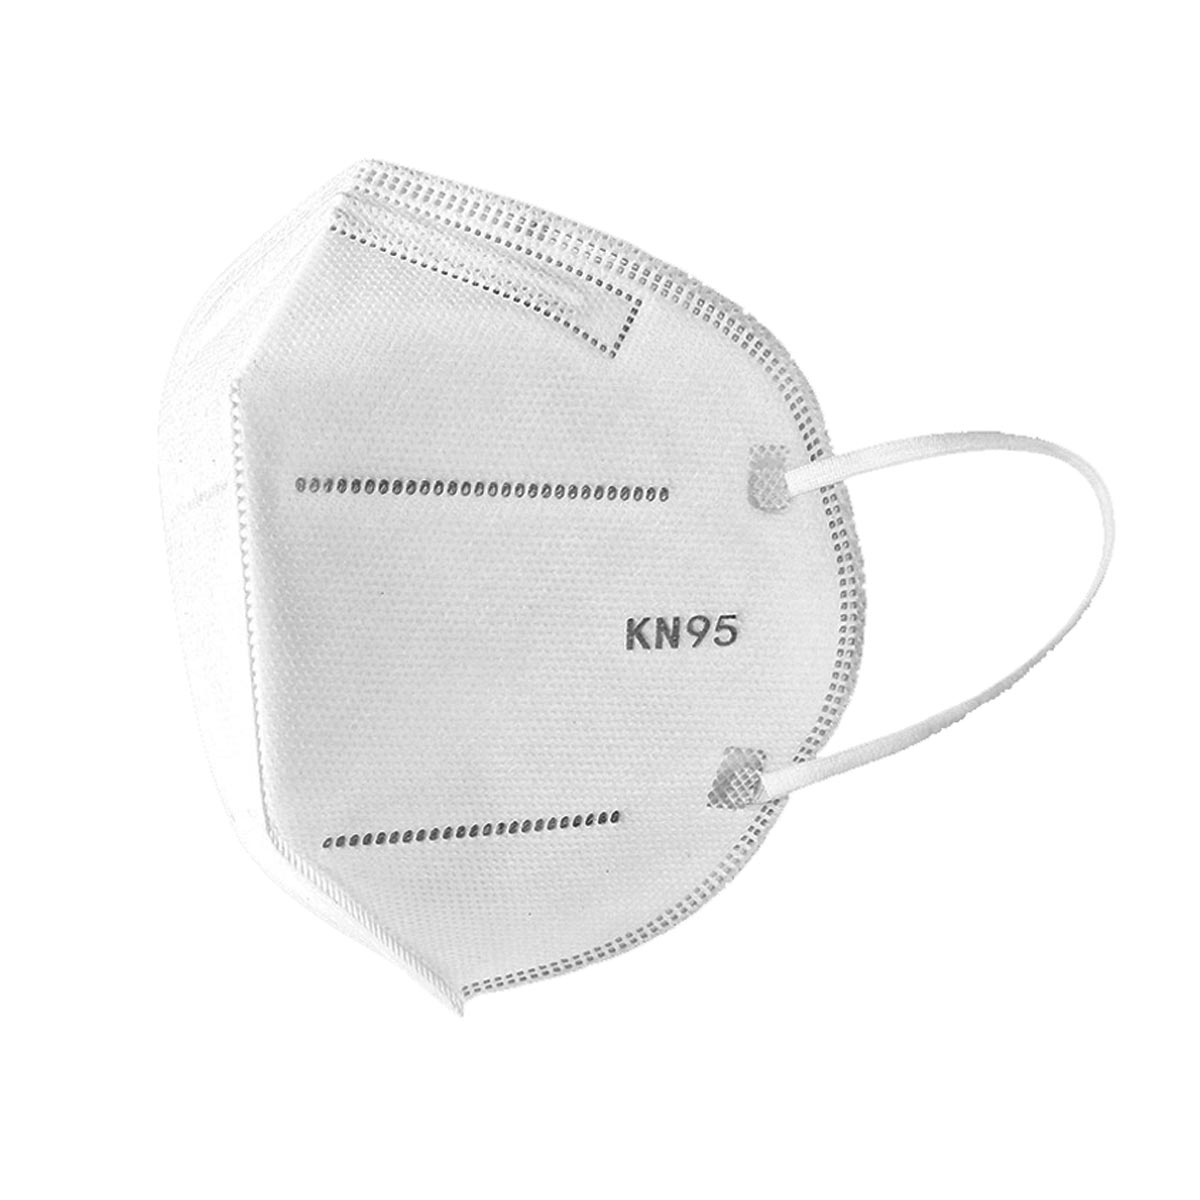 shopify-Pack of 50 Protective KN95 Masks - 5 Layer Reusable KN95 Face Masks-4